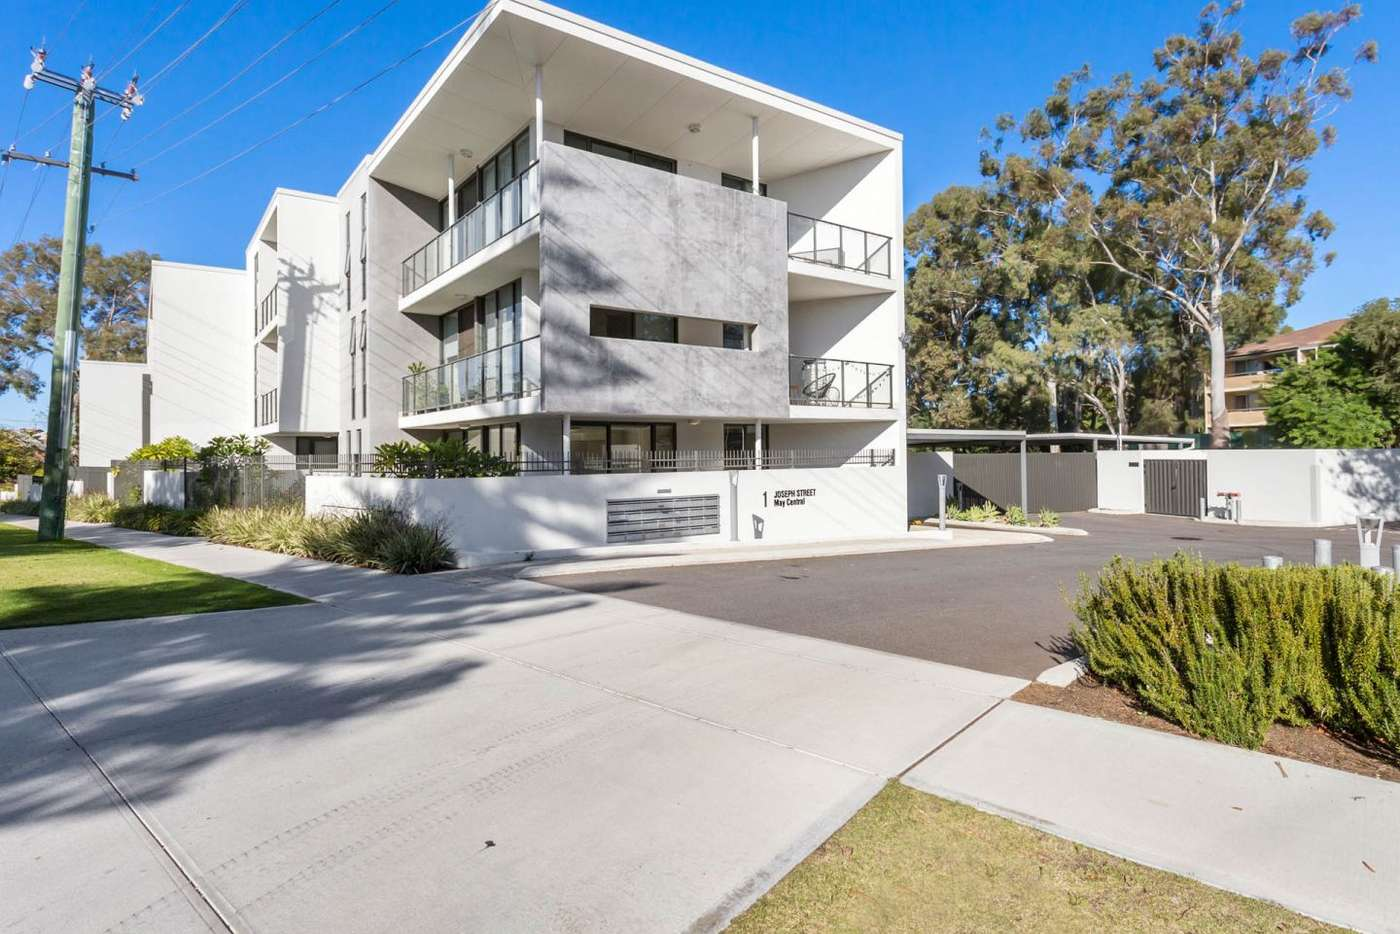 Main view of Homely apartment listing, 1/1 Joseph Street, Maylands WA 6051